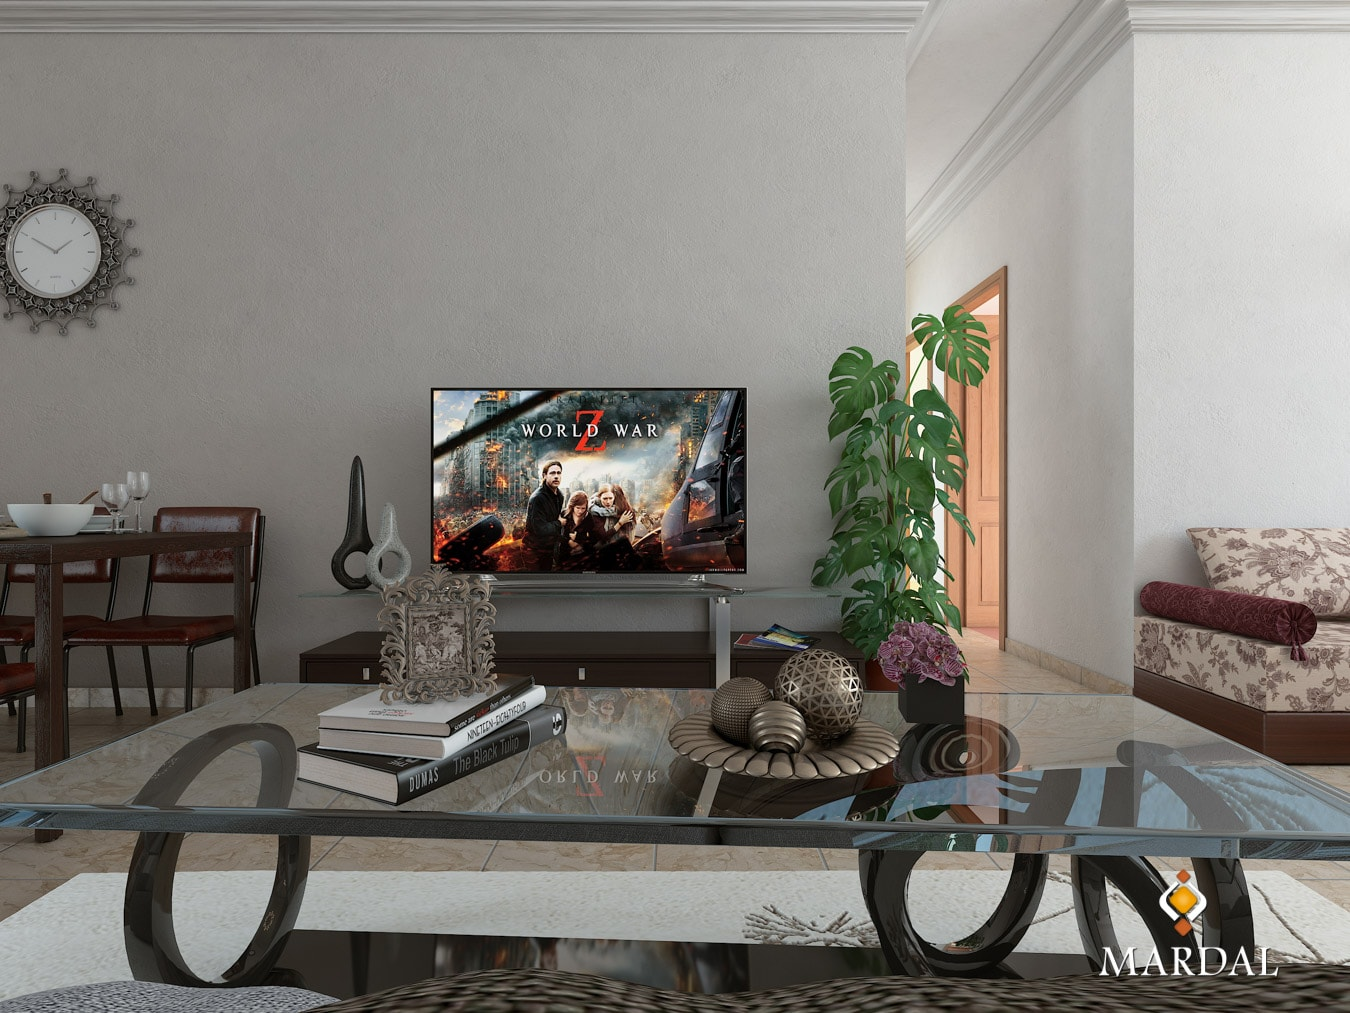 Apartment Interior Table TV - 3D Modeling, Visualization and Interactive Apps - Copyright Mardal S.A.R.L.